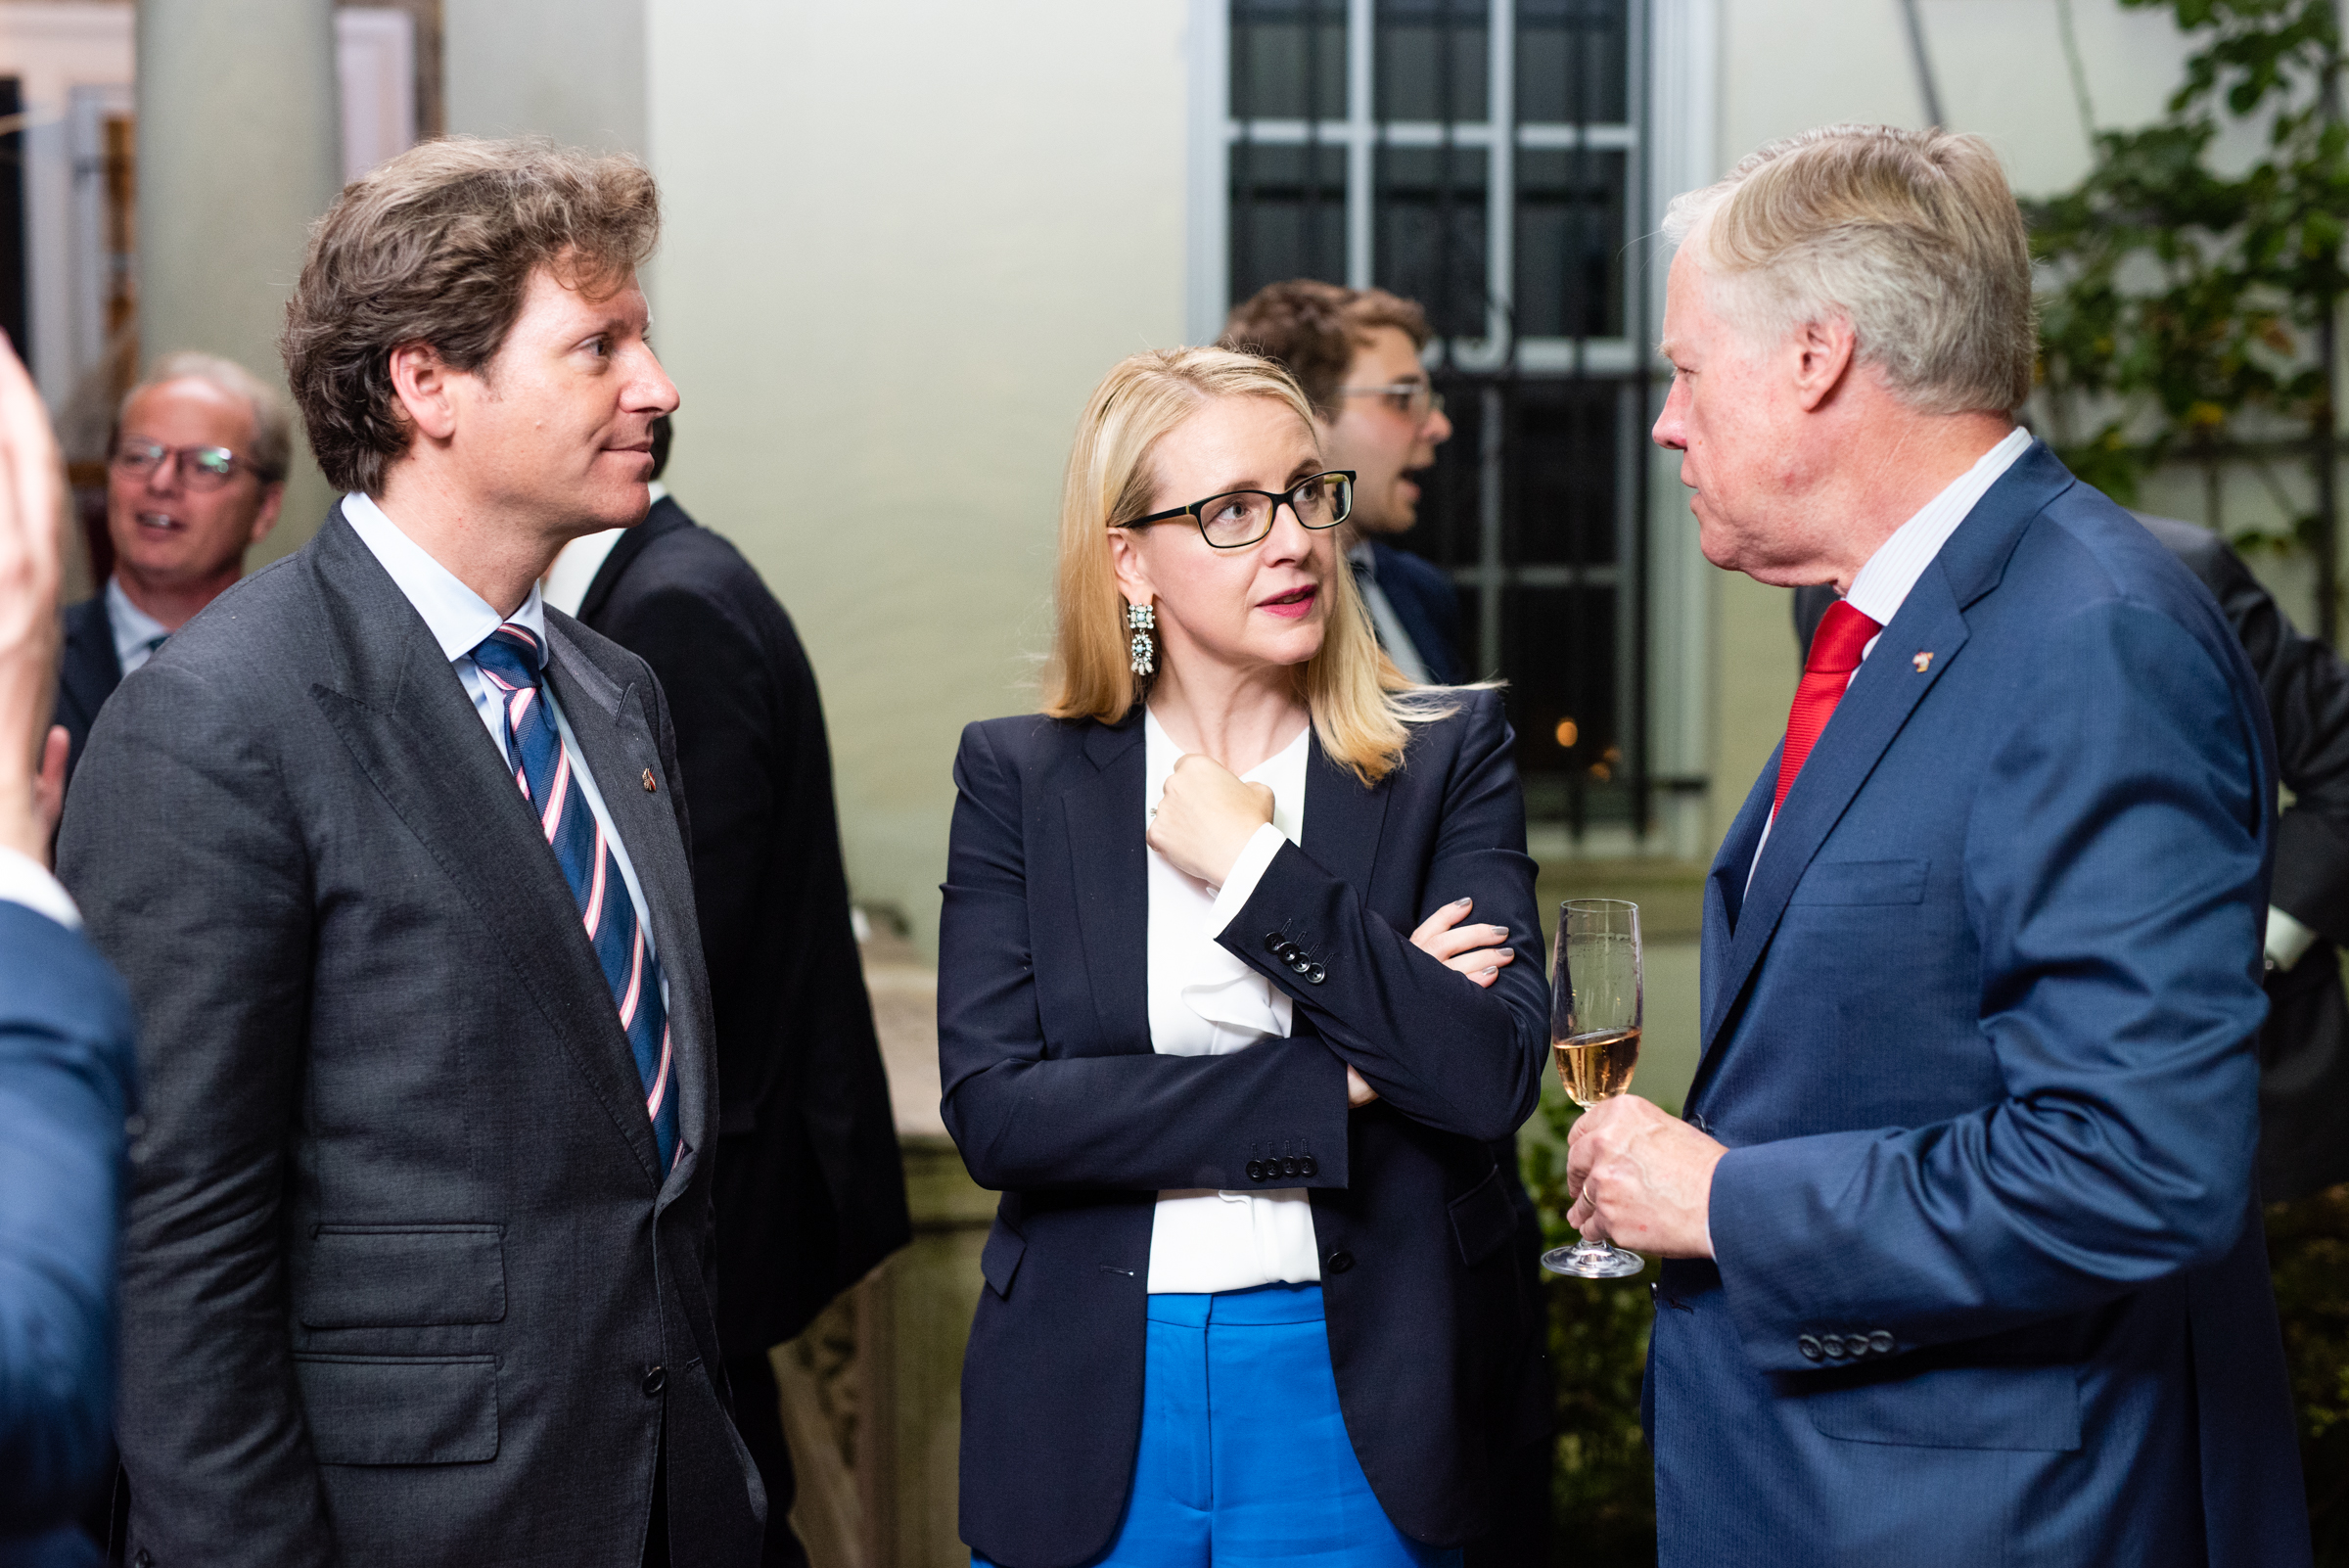 Current U.S. Ambassador to Austria Traina, Minister Schramböck, and former U.S. Ambassador to Austria William Eacho among other international guests at the Ambassador's residence (c) Philipp Hartberger